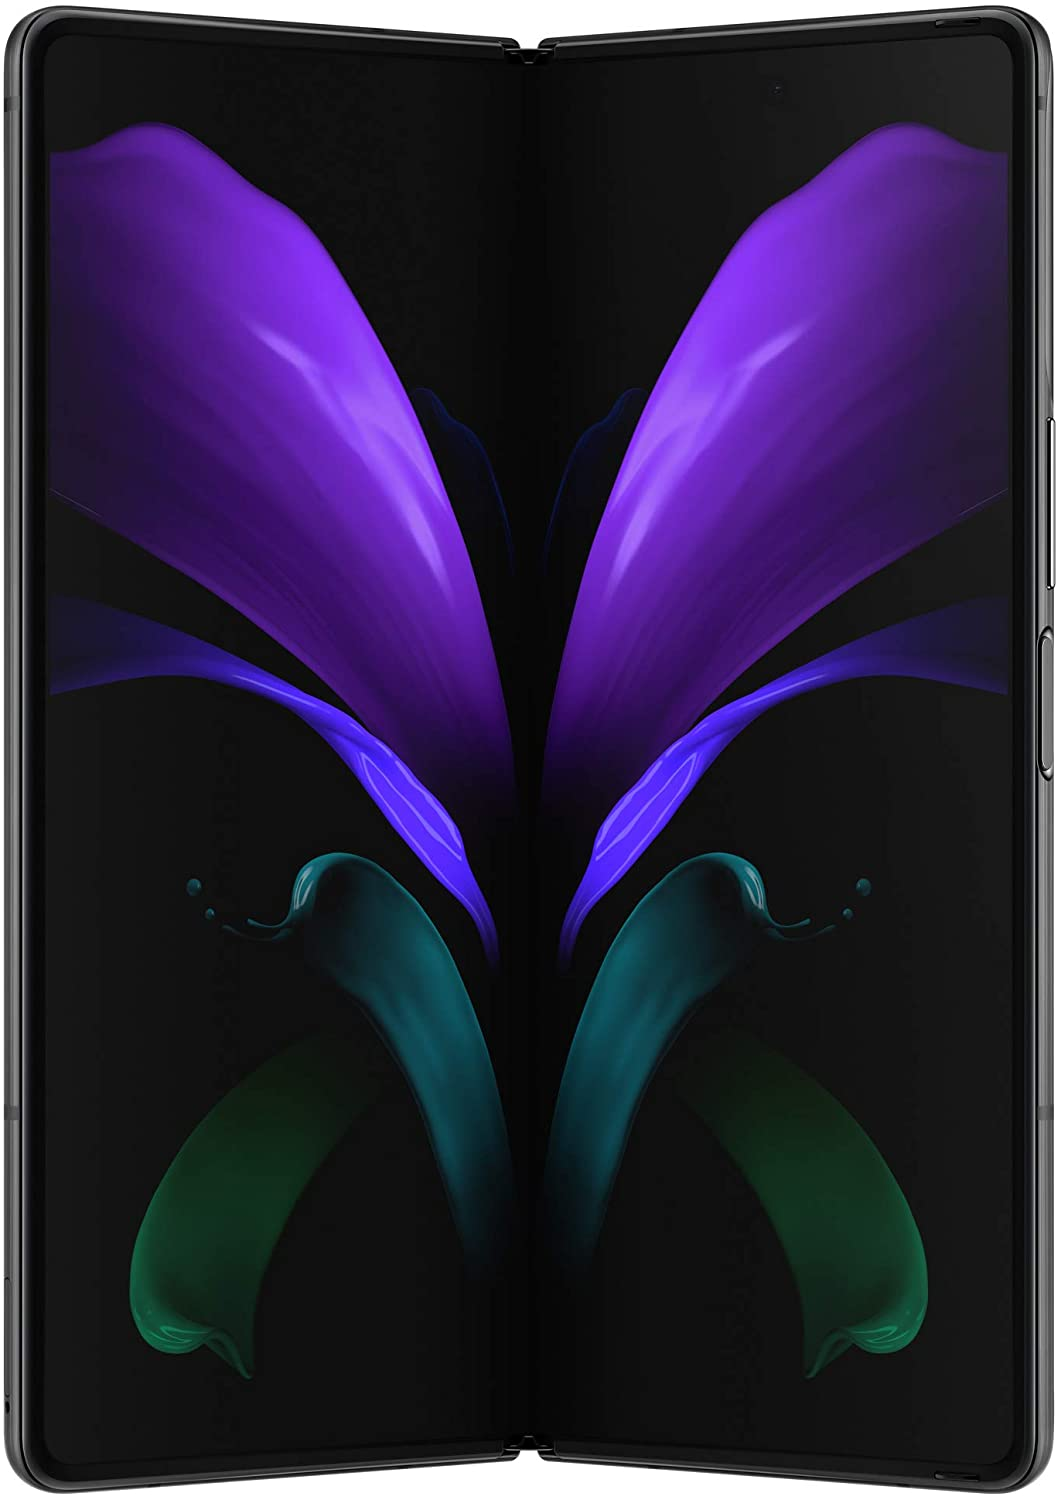 Samsung Electronics Galaxy Z Fold 2 5G | Factory Unlocked Android Cell Phone | 256GB Storage | US Version Smartphone Tablet | 2-in-1 Refined Design, Flex Mode | Mystic Black (SM-F916UZKAXAA)